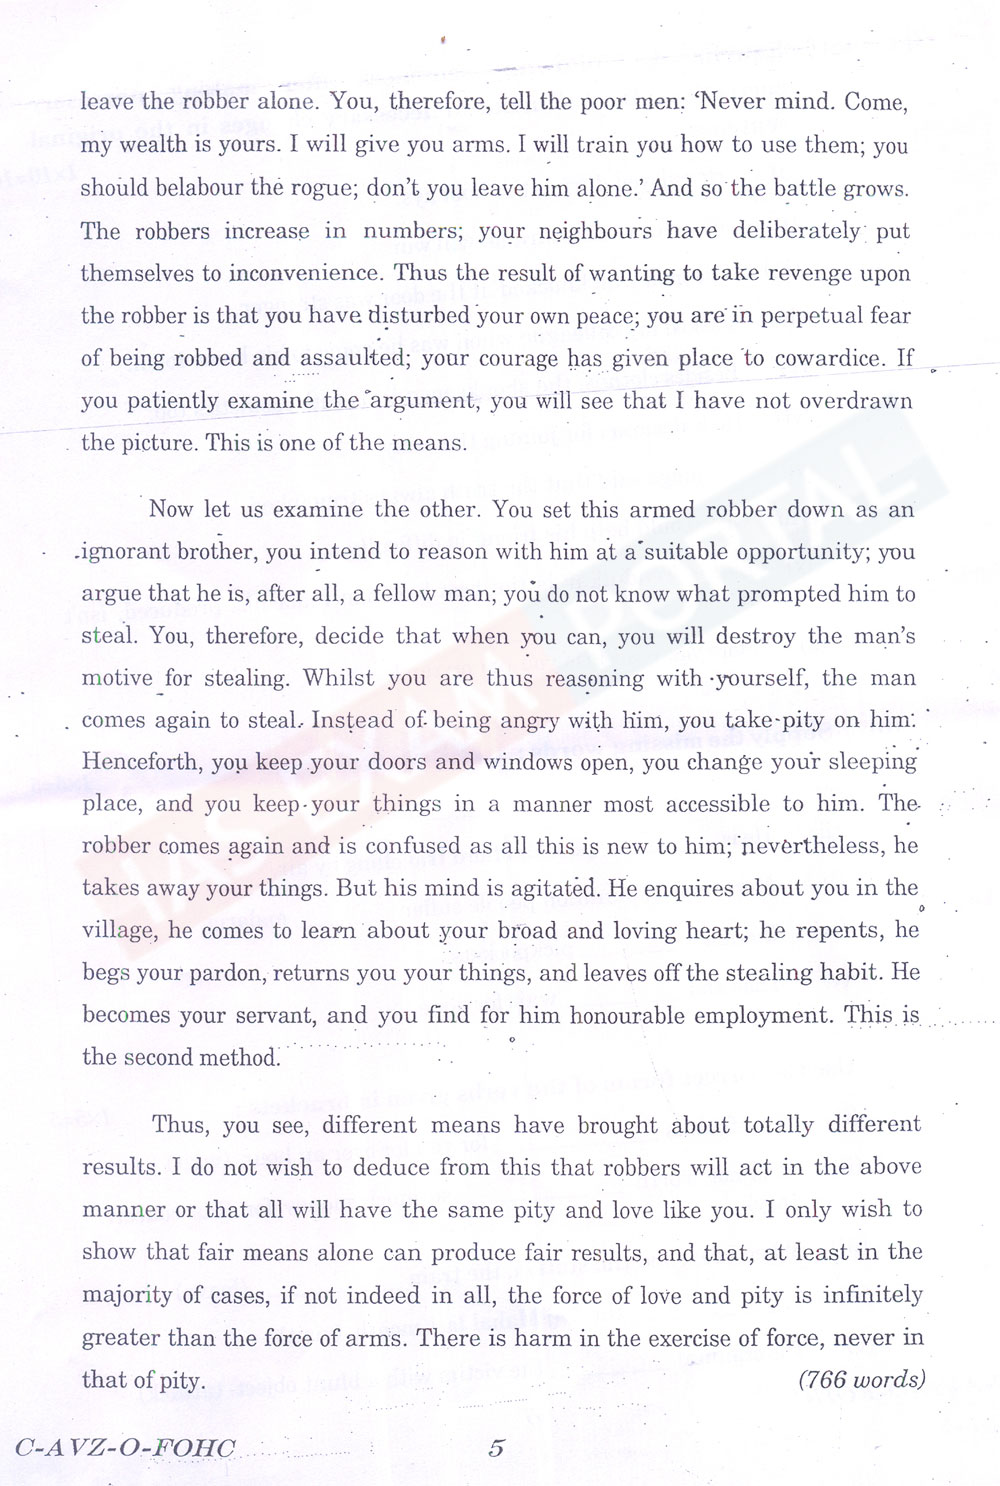 essay paper for ias exam